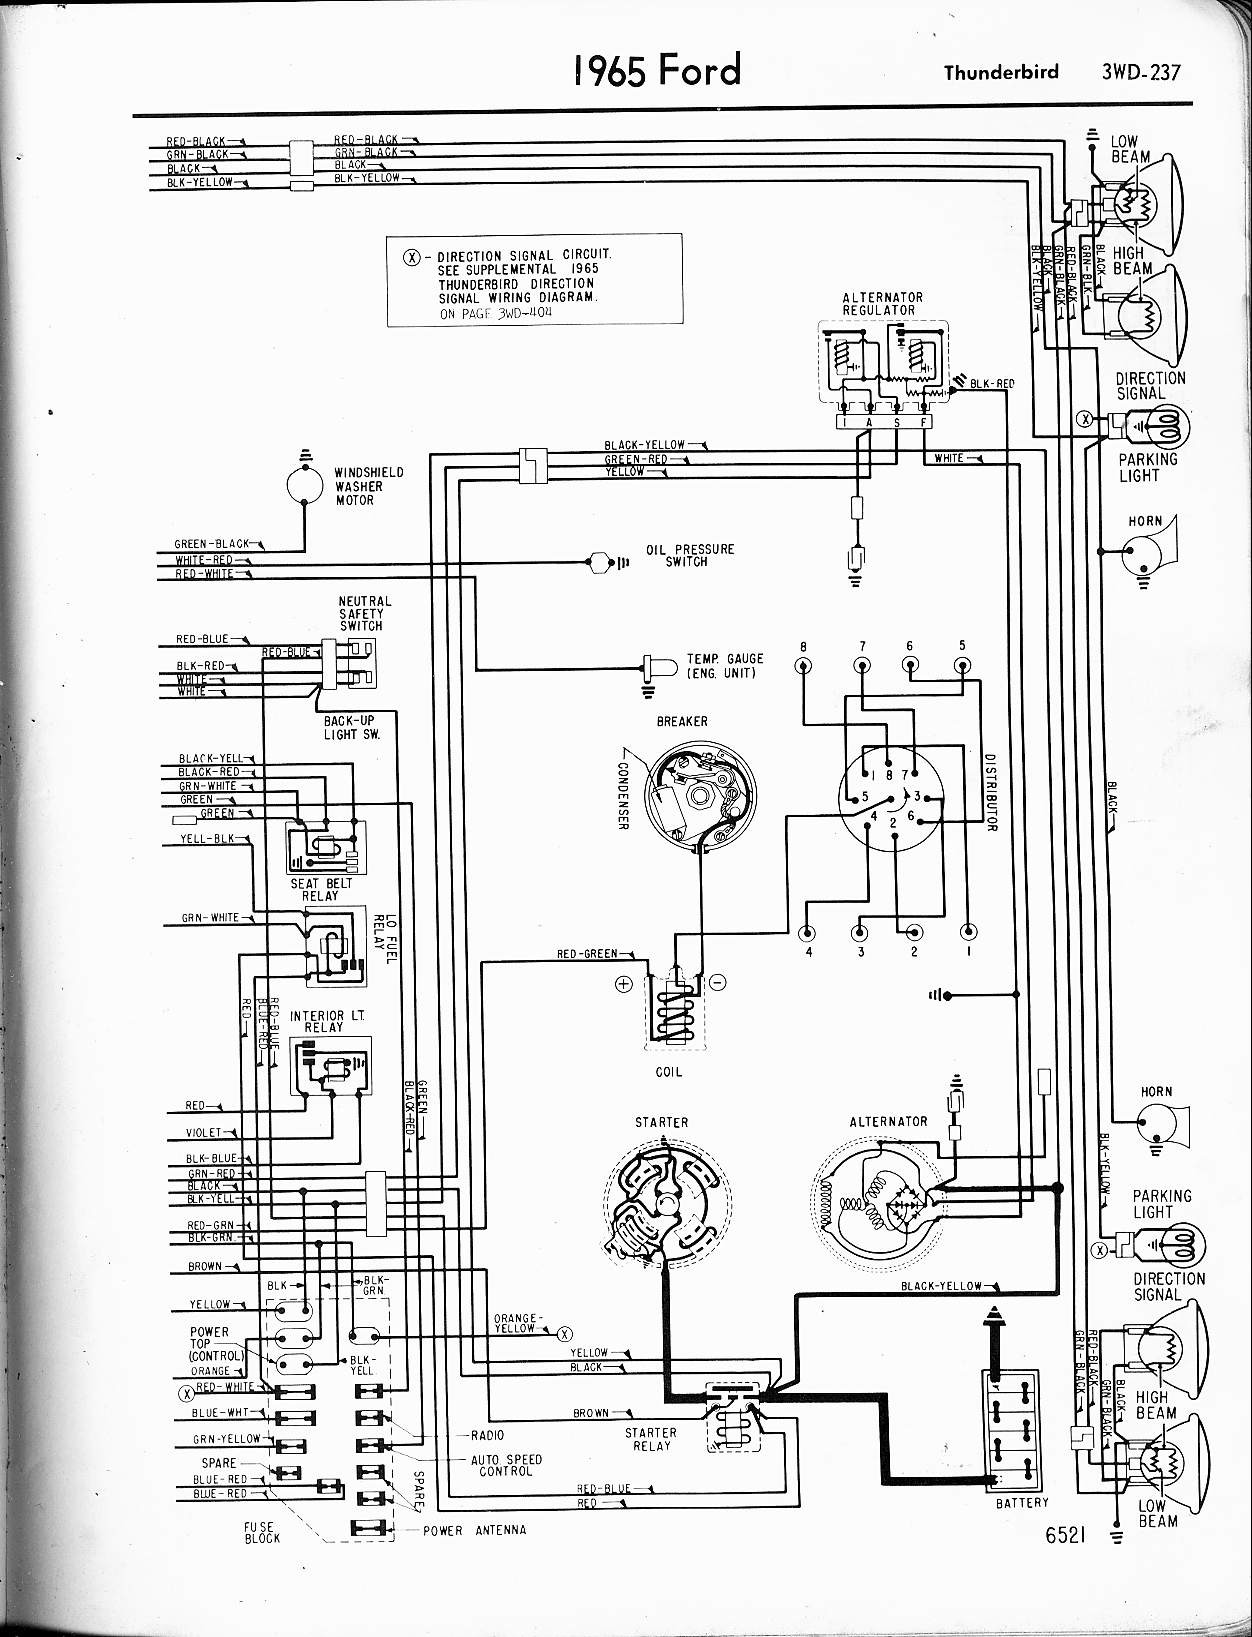 Ford F250 Tail Light Wiring Colors Wrg 7916] 1965 Econoline Wiring Diagram Of Ford F250 Tail Light Wiring Colors